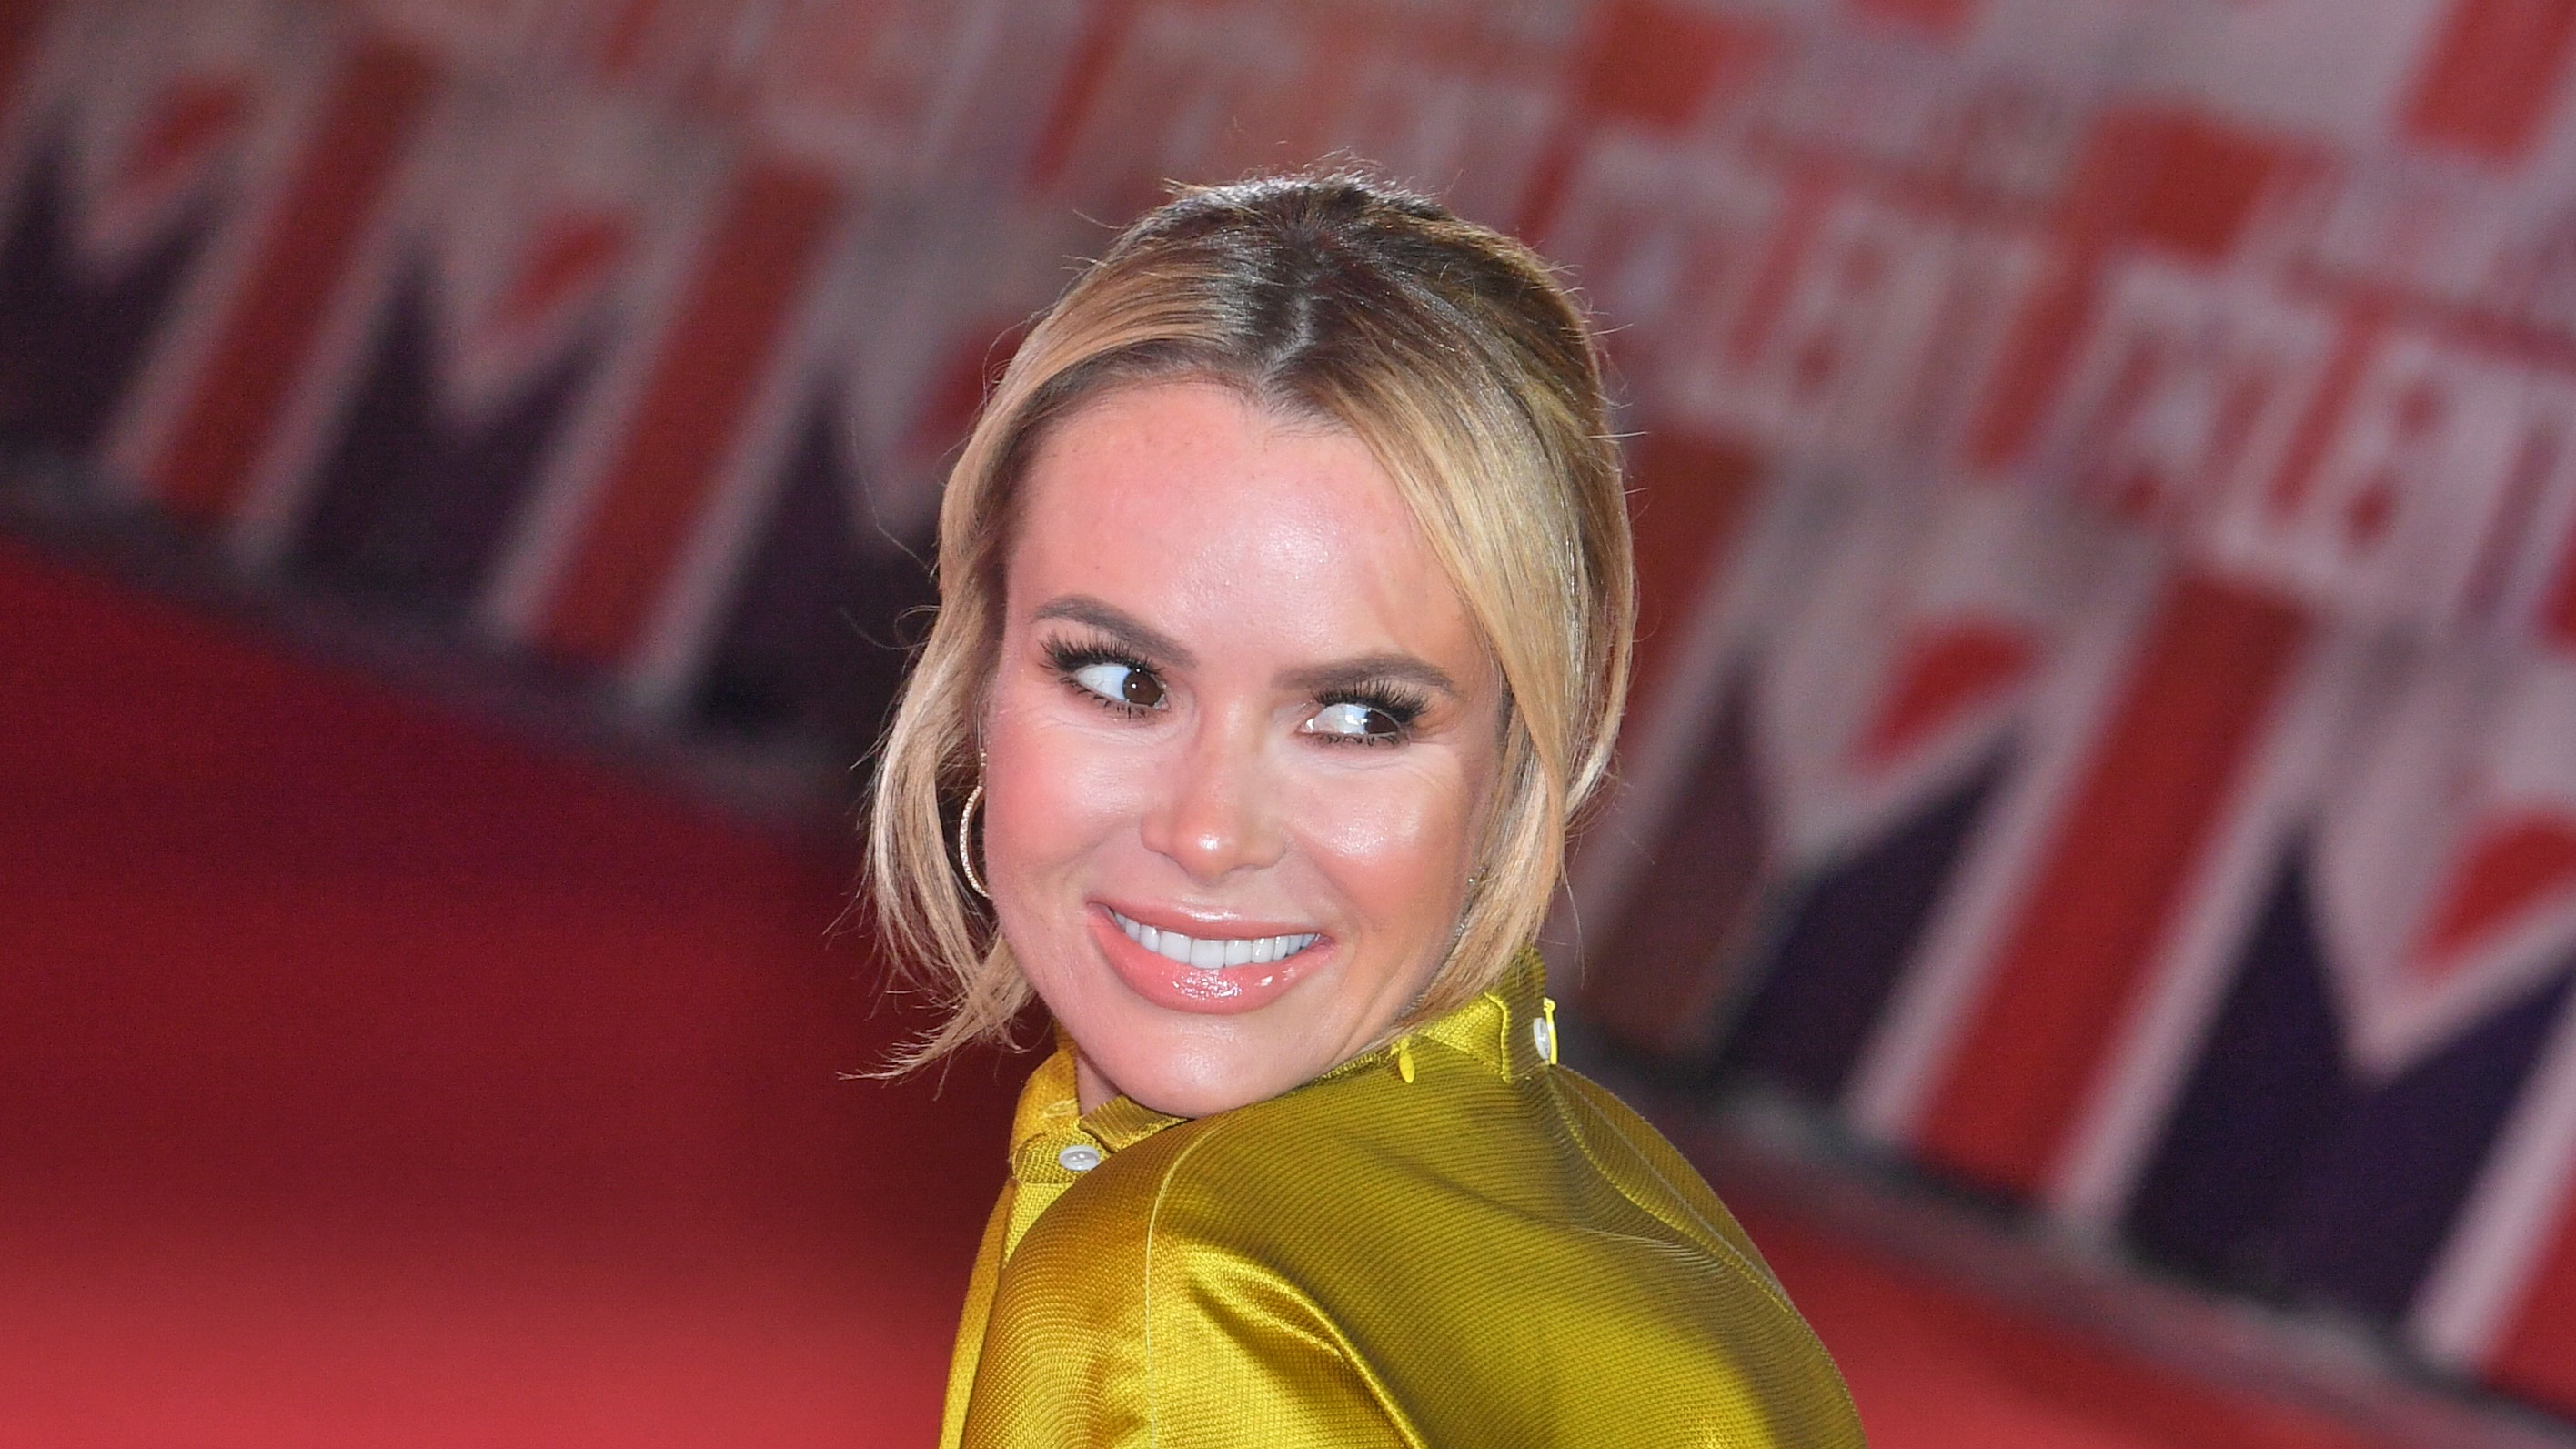 This Morning star slams Amanda Holden over Phillip Schofield 'feud'